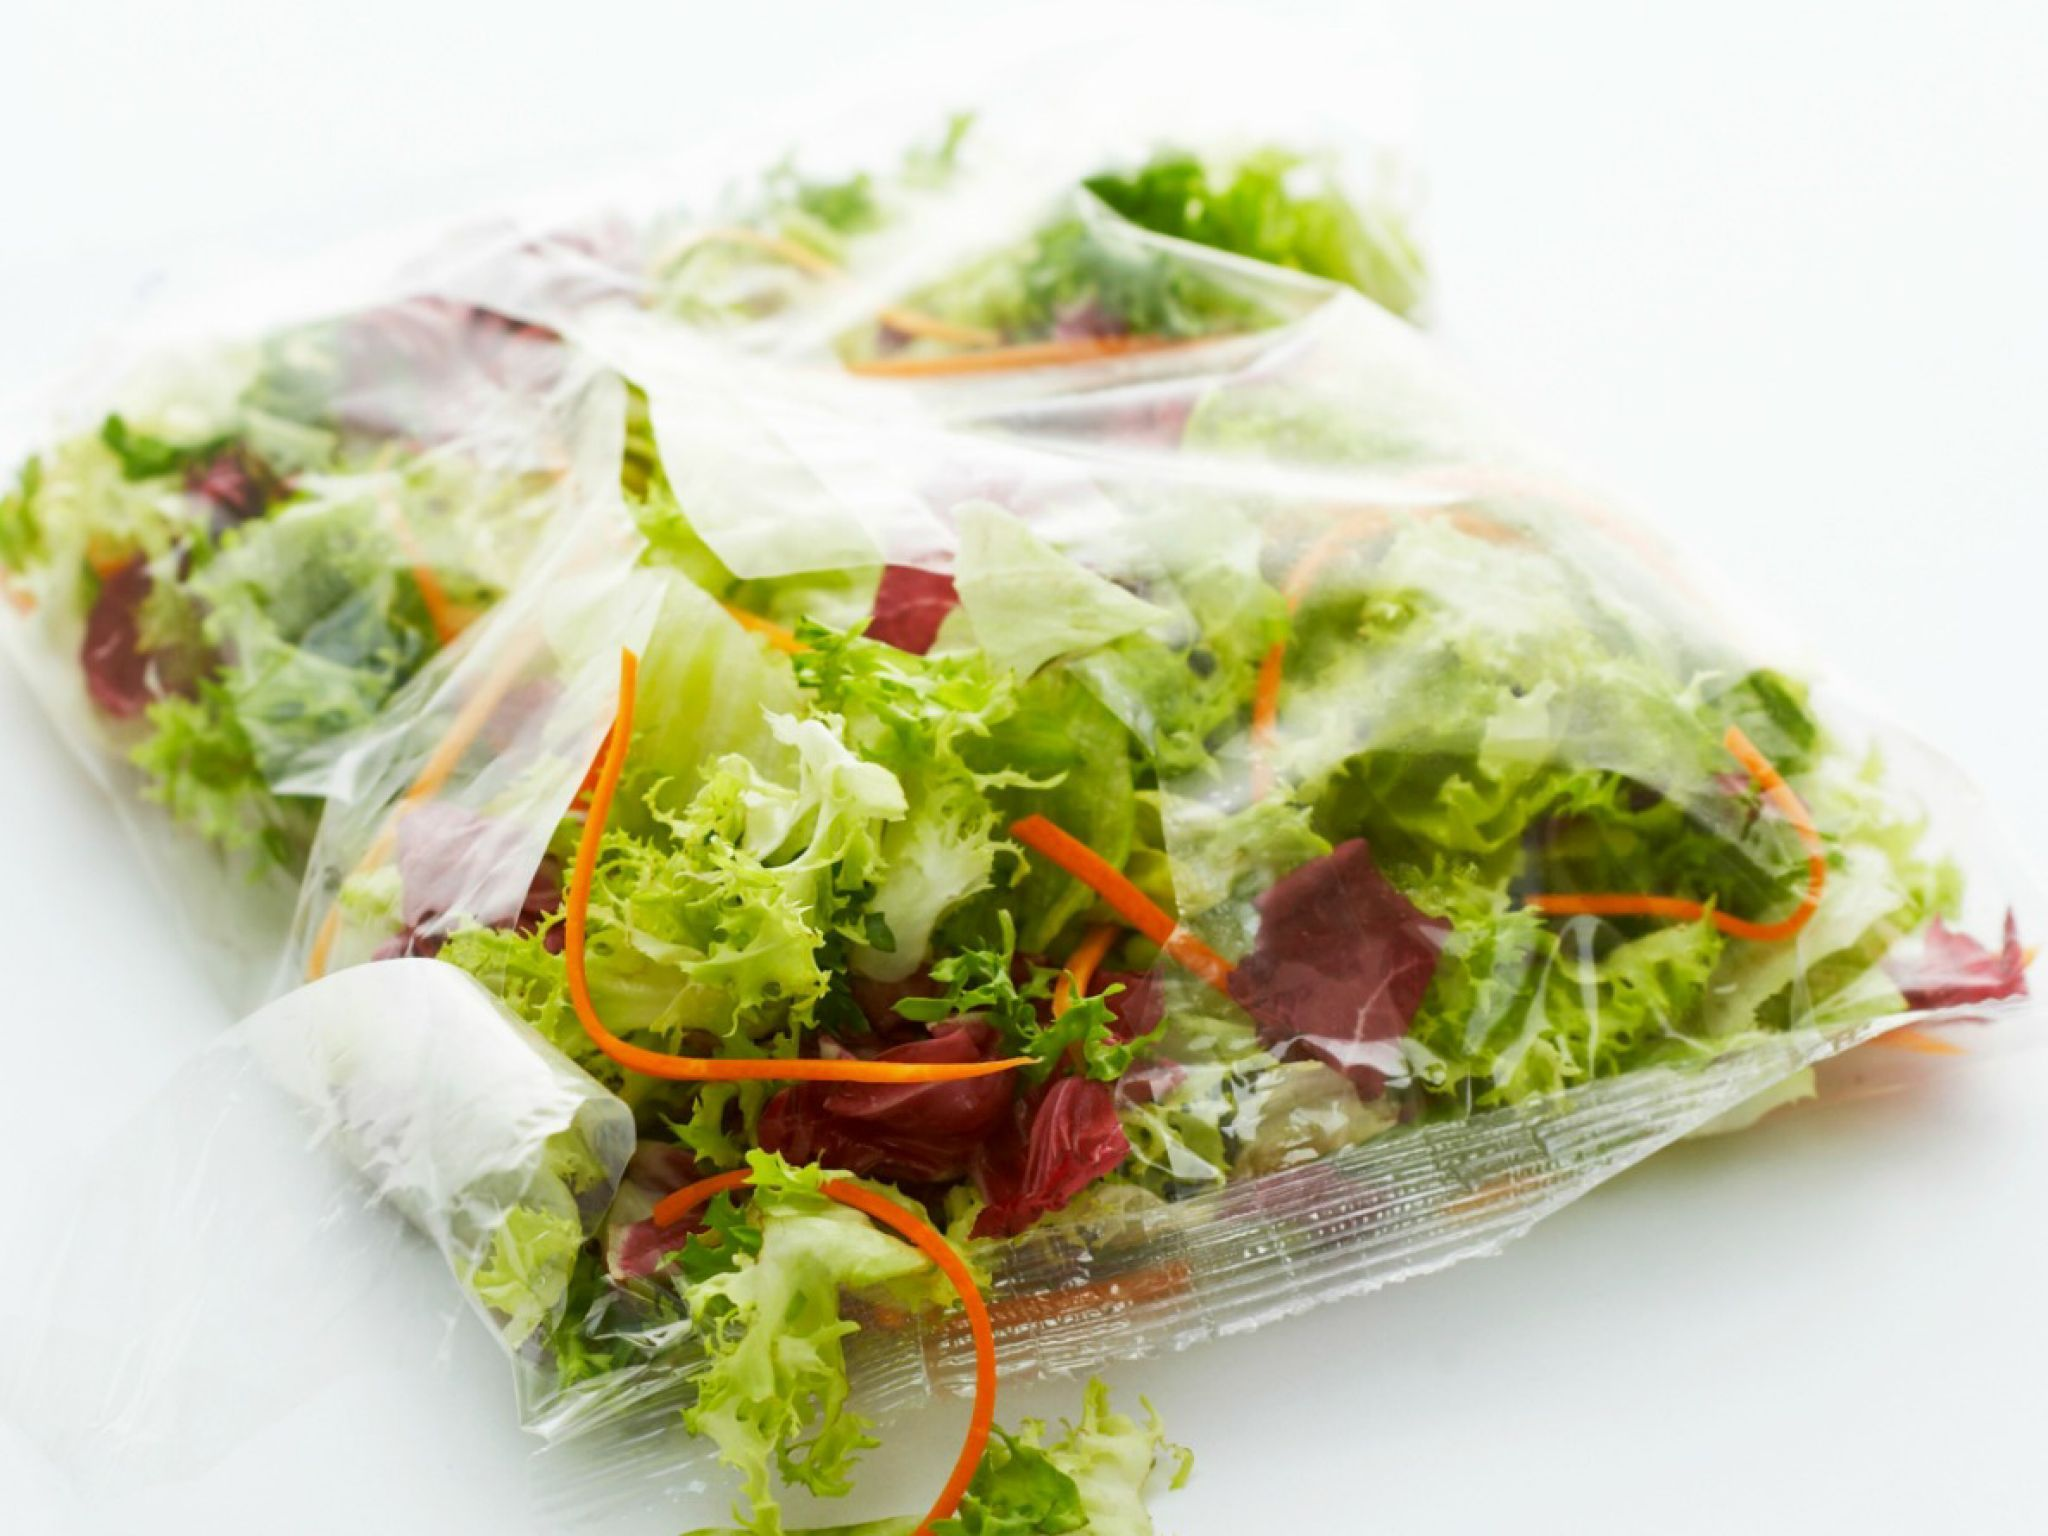 Bags of Prewashed Greens : Some produce will last for weeks — but, sadly, not packaged lettuces and spinach. Even if the leaves aren't wilted, heed the expiration date on the bag to avoid exposing yourself to bacterial growth.   Photo: Marc O. Finley/Getty